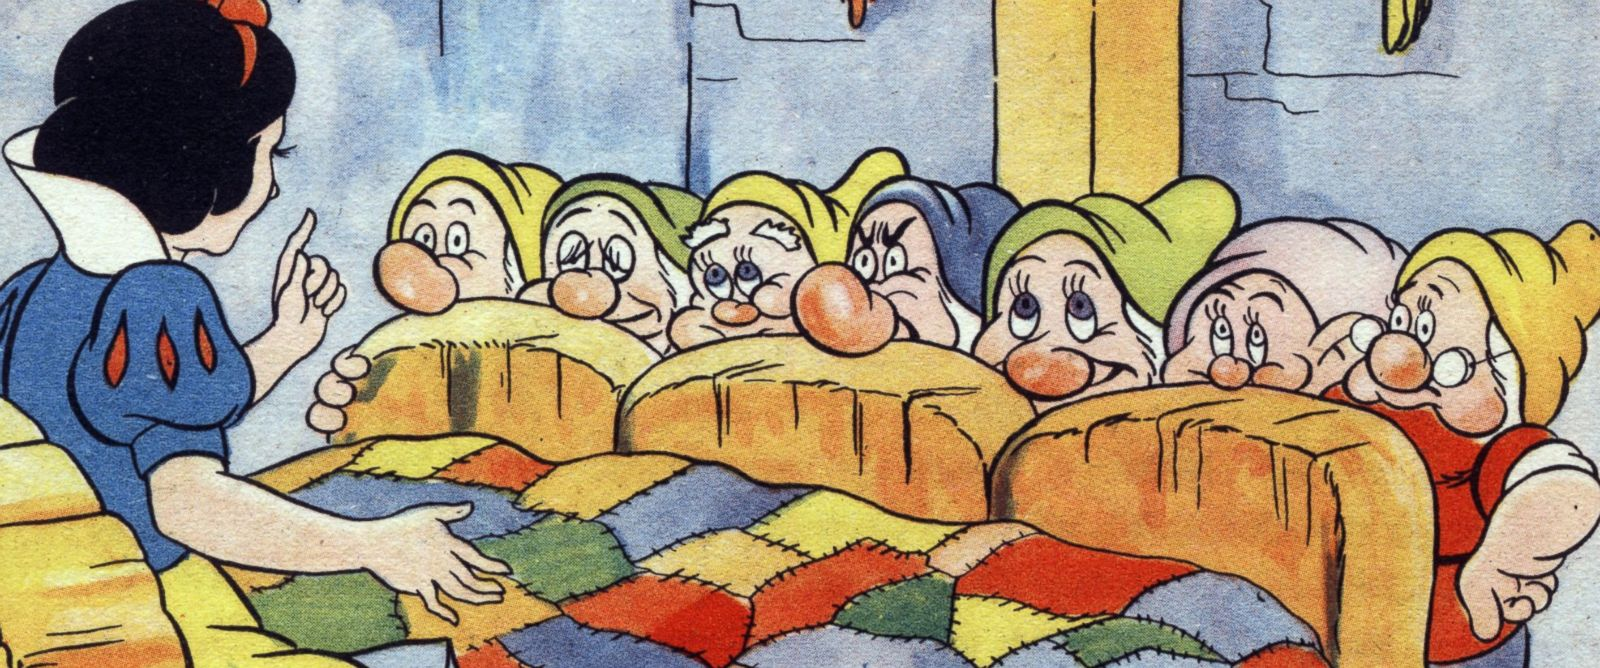 PHOTO: The 7 dwarfs are frightened by Snow White in an illustration by Walt Disney from the French book, 1940.